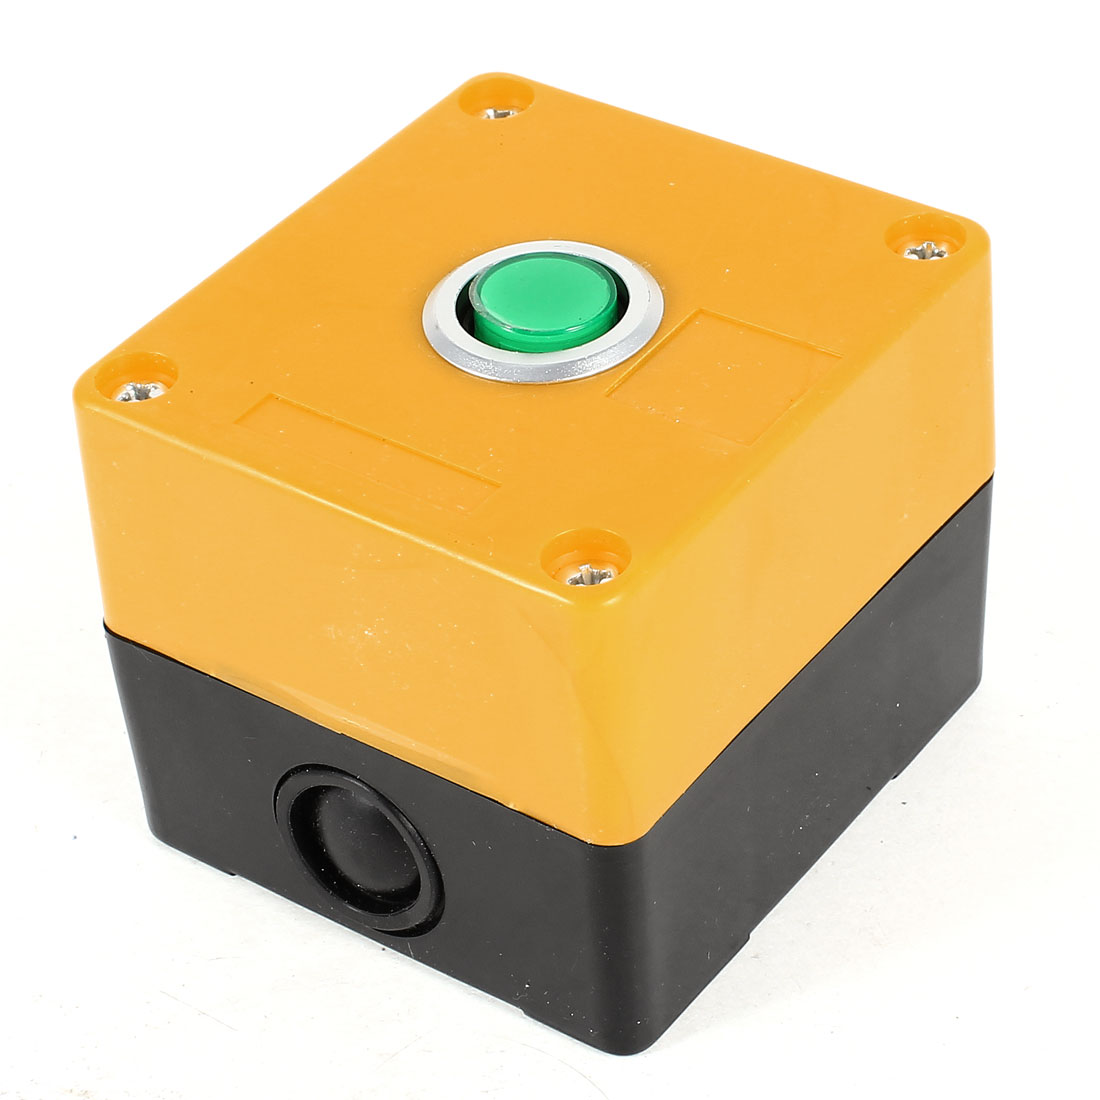 AC 220V 5A SPDT 1NO 1NC 3-Pin Self-Locking Green Button Black Yellow Plastic Pushbutton Station Switch Control Box